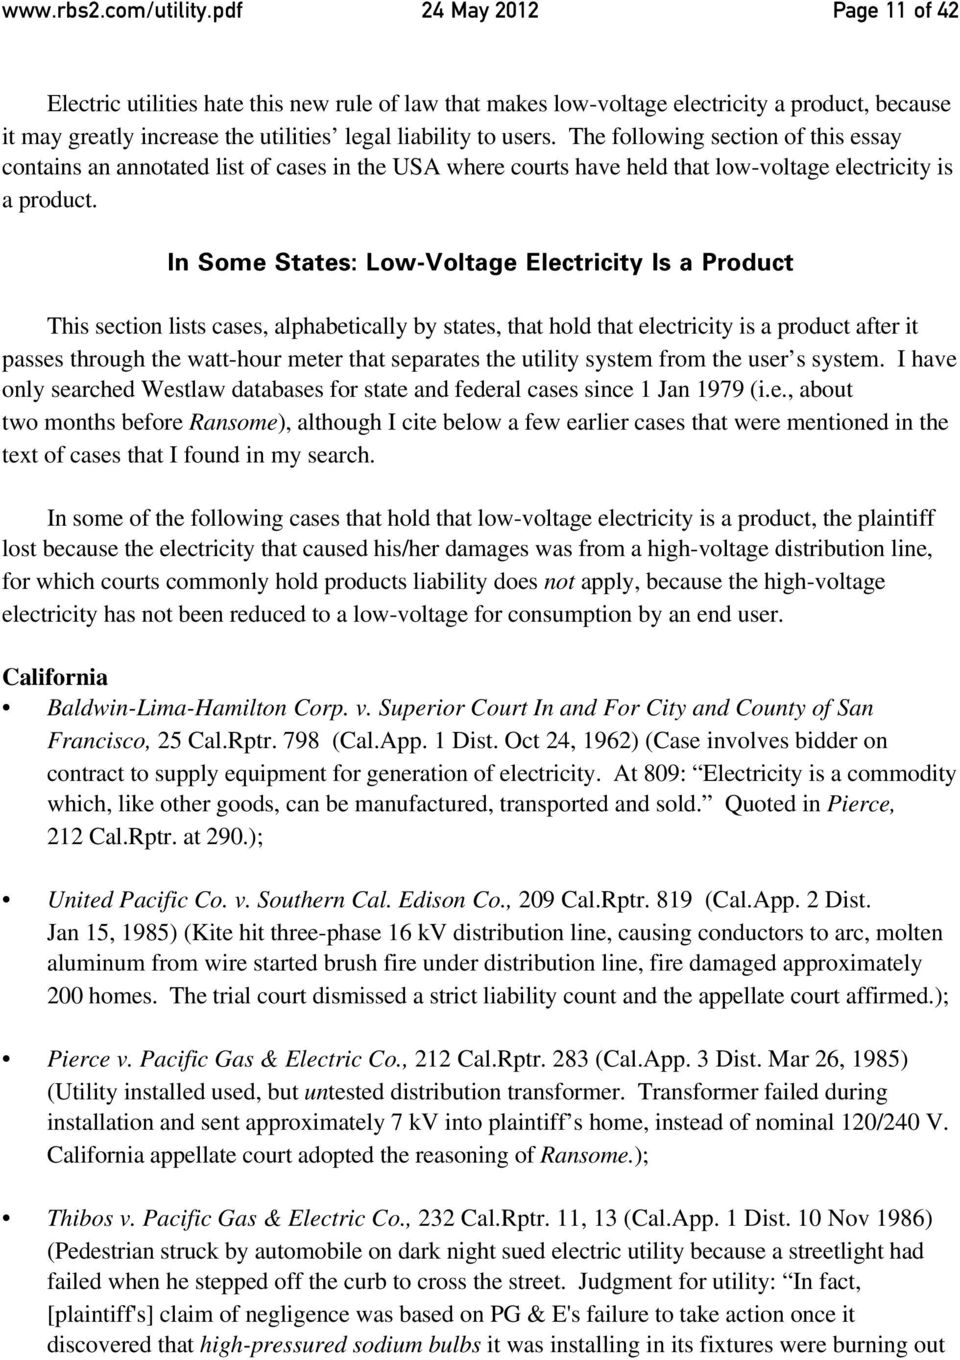 The following section of this essay contains an annotated list of cases in the USA where courts have held that low-voltage electricity is a product.